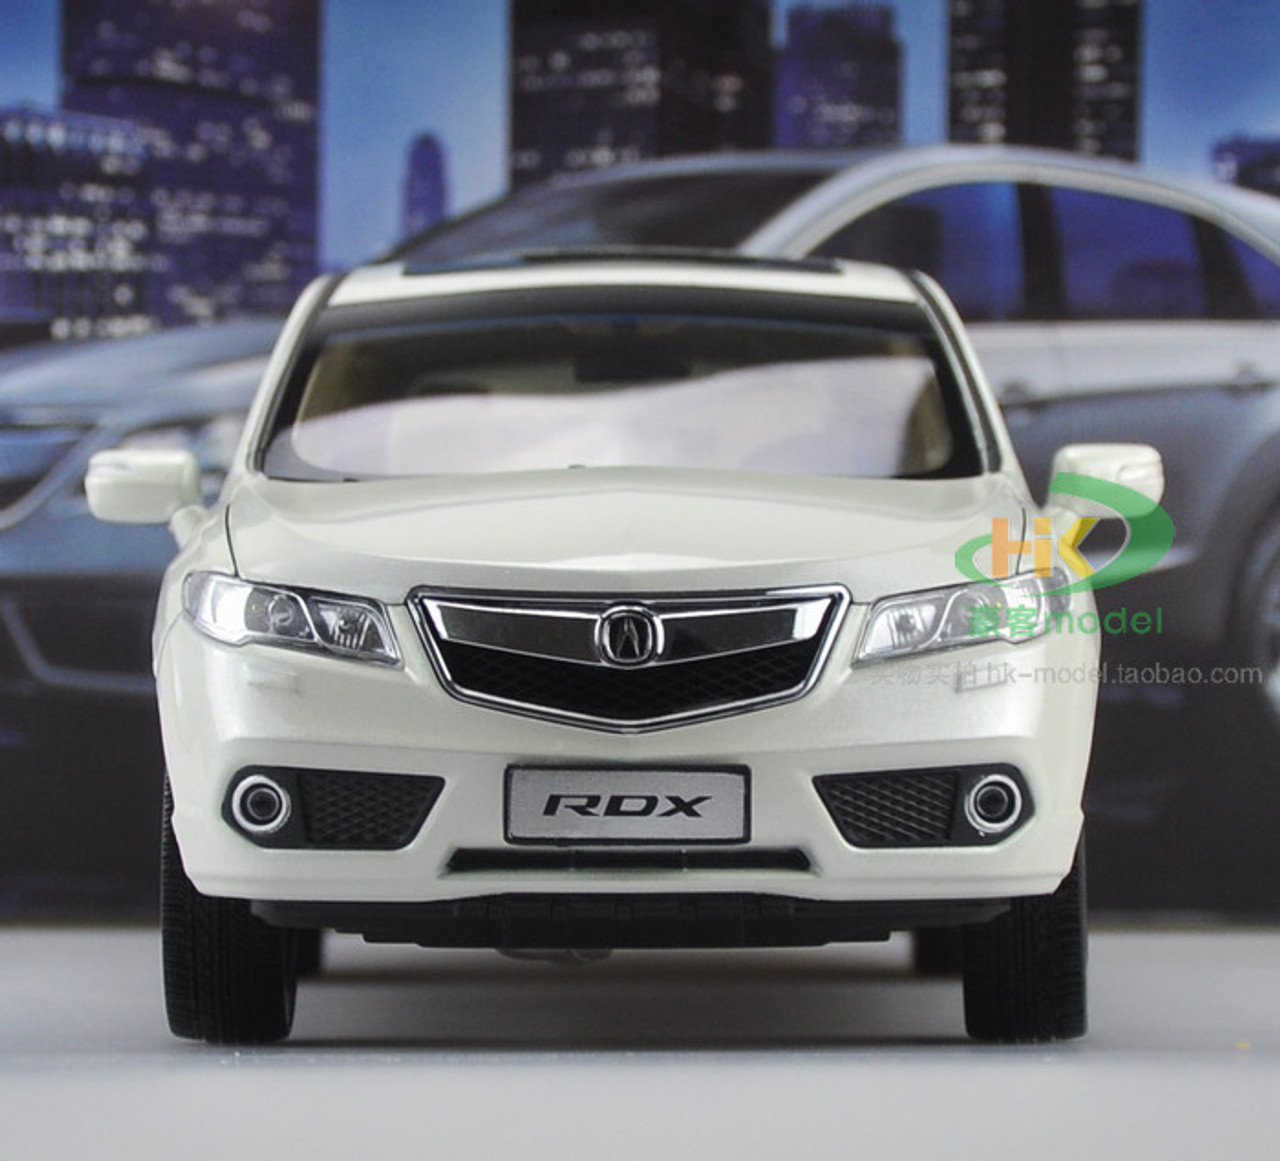 1/18 Dealer Edition Acura RDX (White) 2nd Generation (TB3